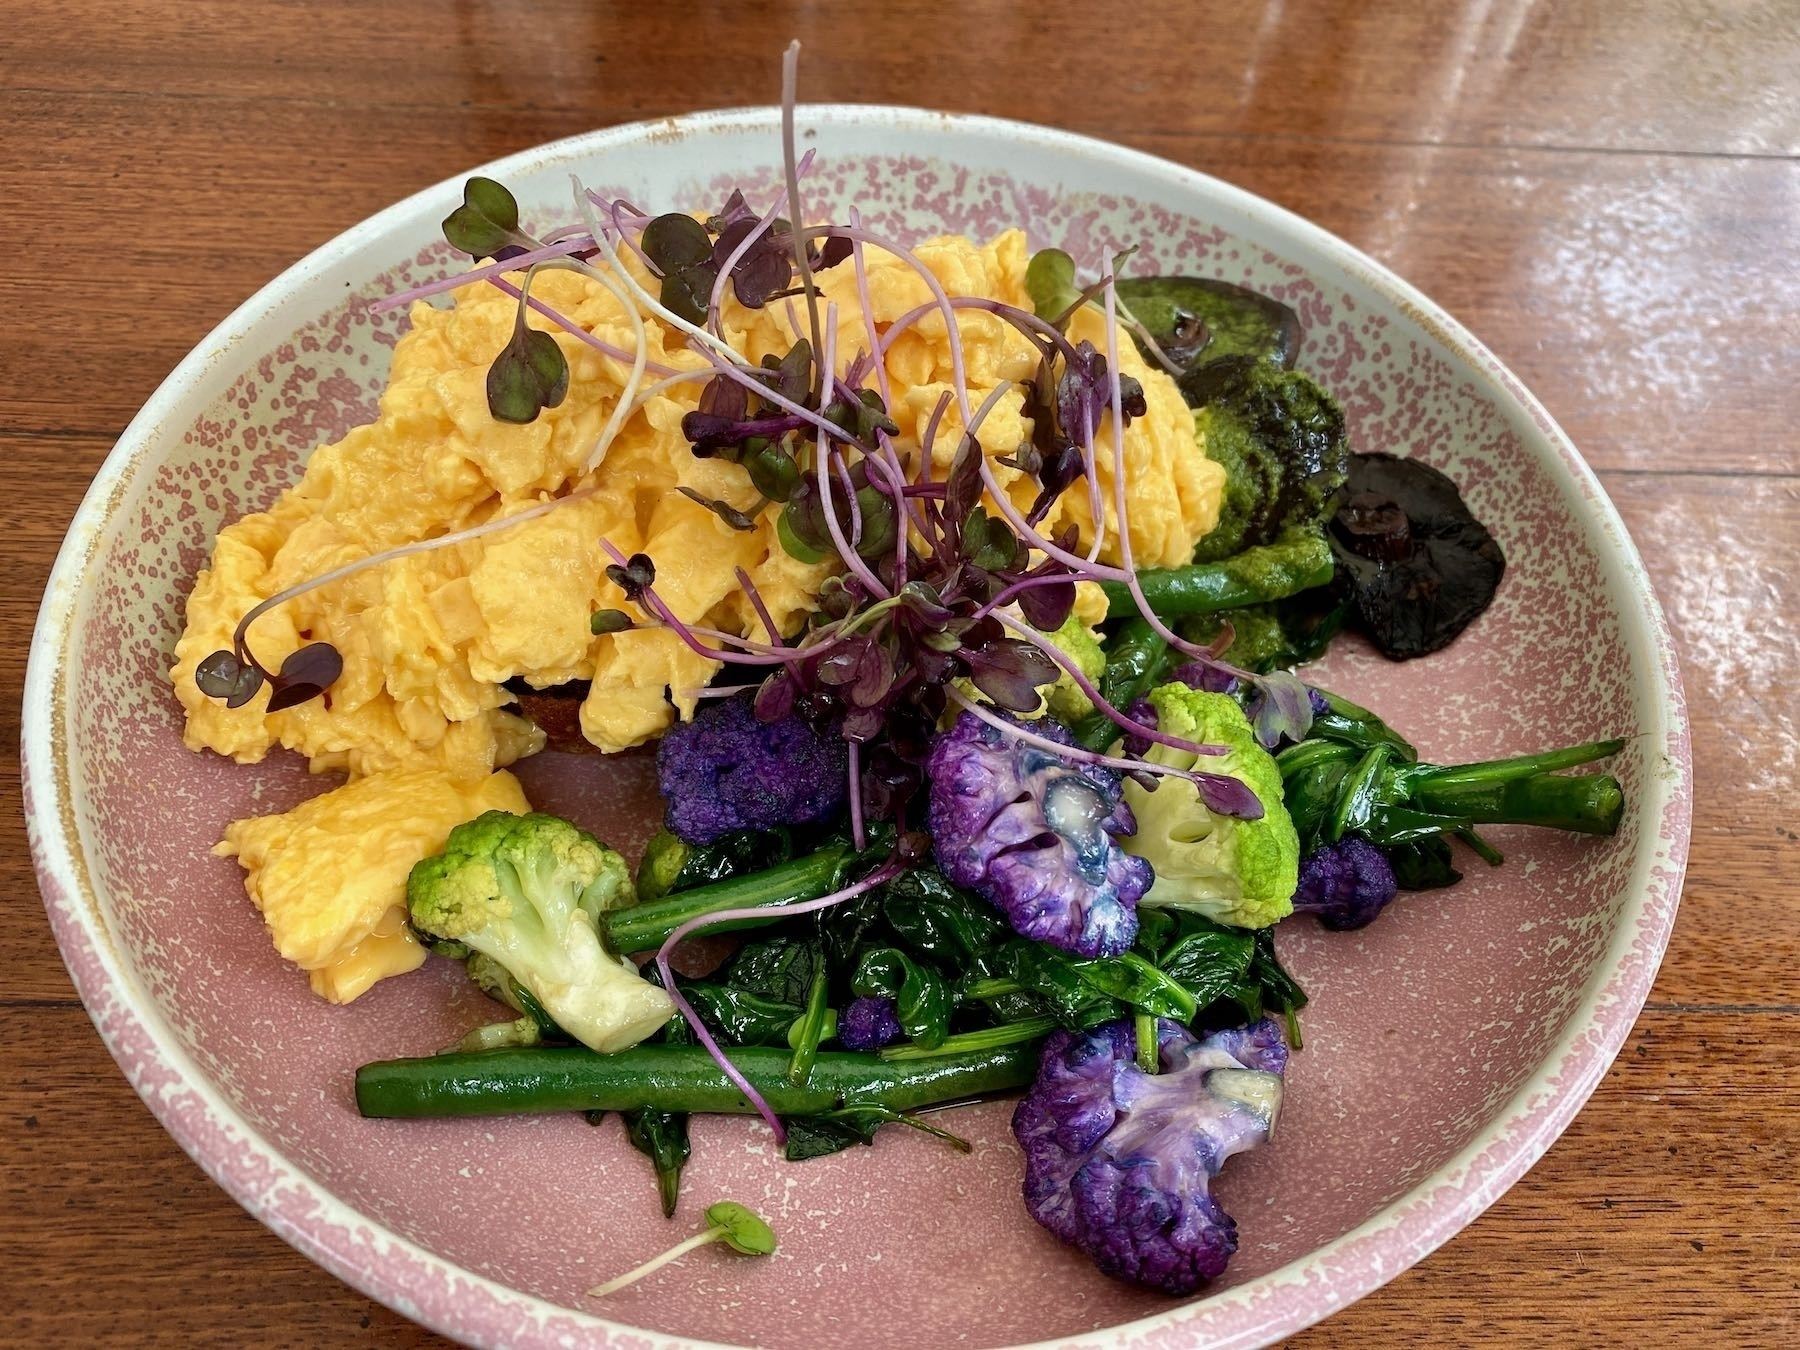 Scrambled eggs with green vegetables and mushrooms.